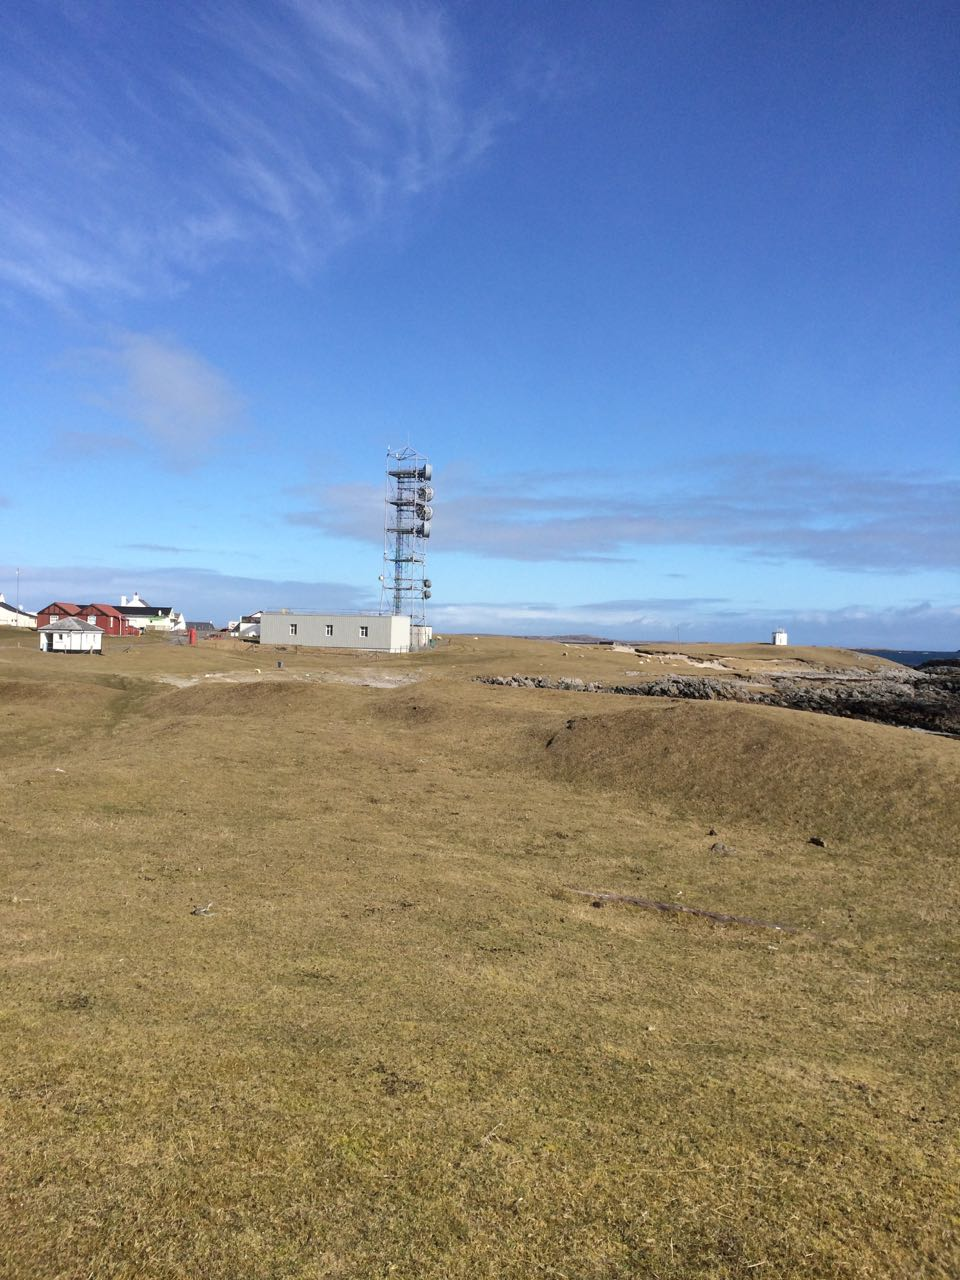 Blue Sky and The Post Office Tower, Scarinish